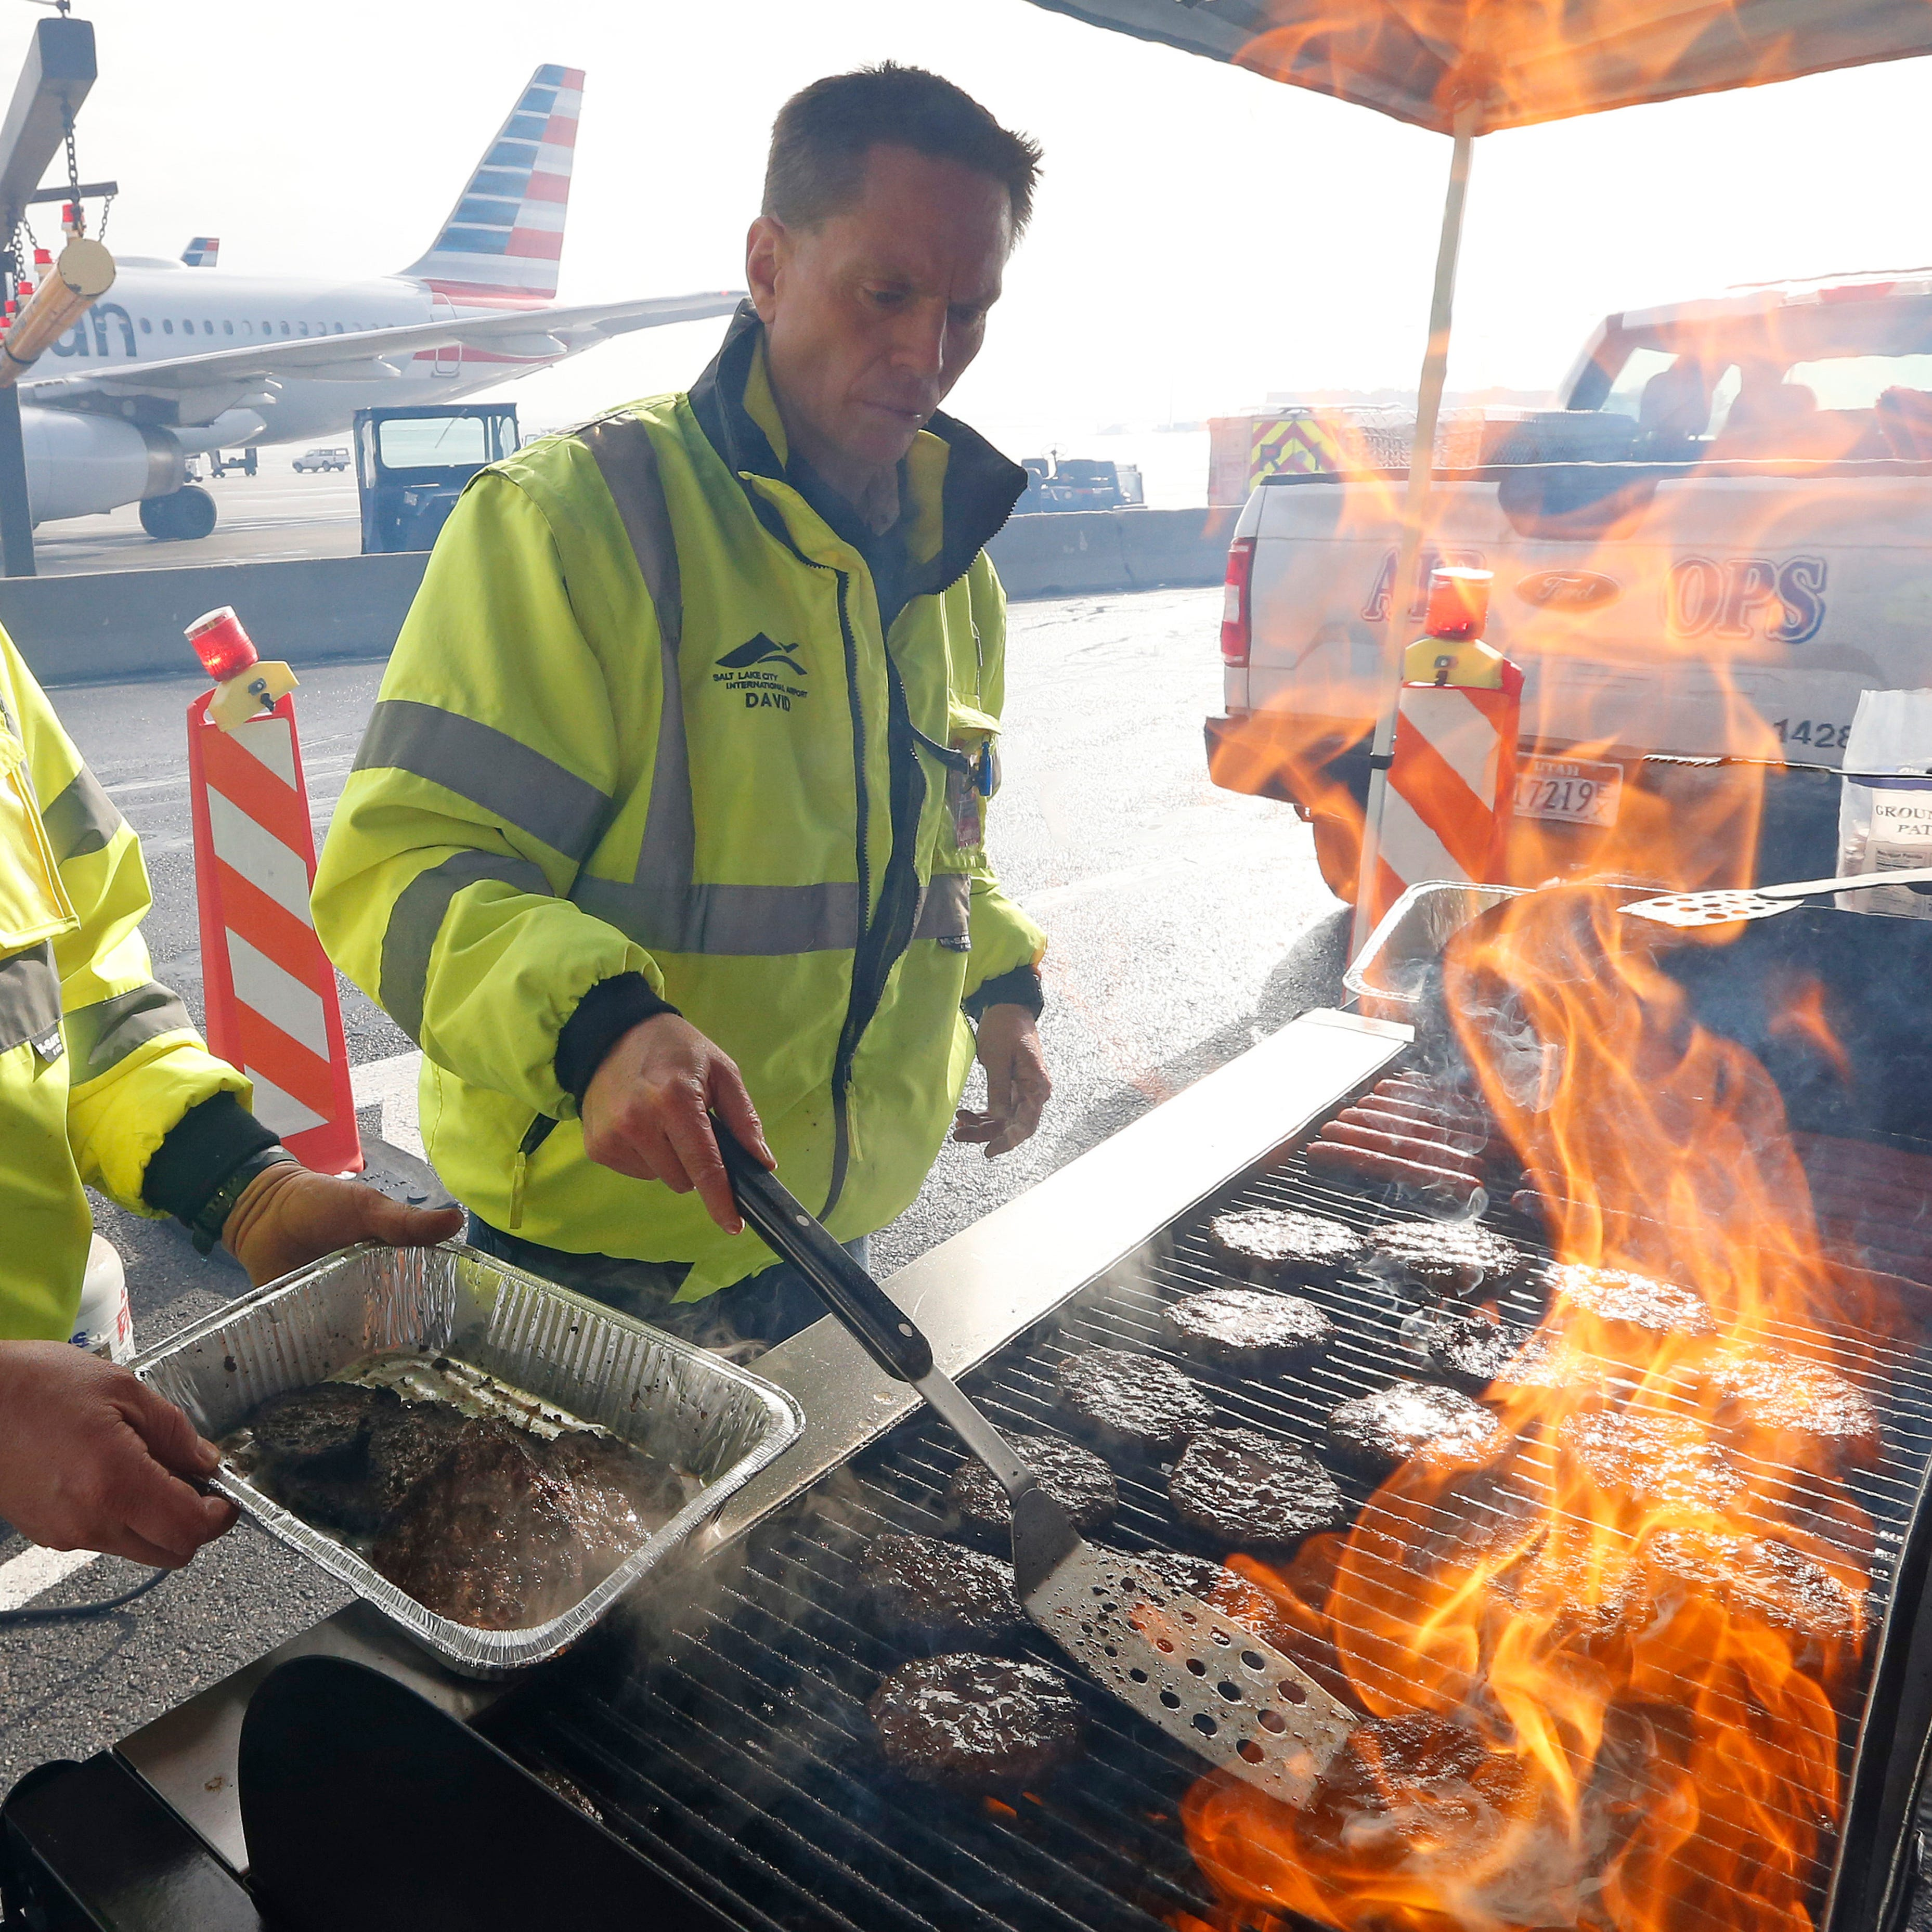 Airport operation workers wearing fluorescent safety jackets flipped burgers and hot dogs on a grill set up on a tarmac in front of a plane at Salt Lake City International Airport, Wednesday, Jan. 16, 2019, in Salt Lake City. In Salt Lake City, airport officials treated workers from the TSA, FAA and Customs and Border Protection to a free barbecue lunch as a gesture to keep their spirits up during a difficult time. (AP Photo/Rick Bowmer) ORG XMIT: UTRB101